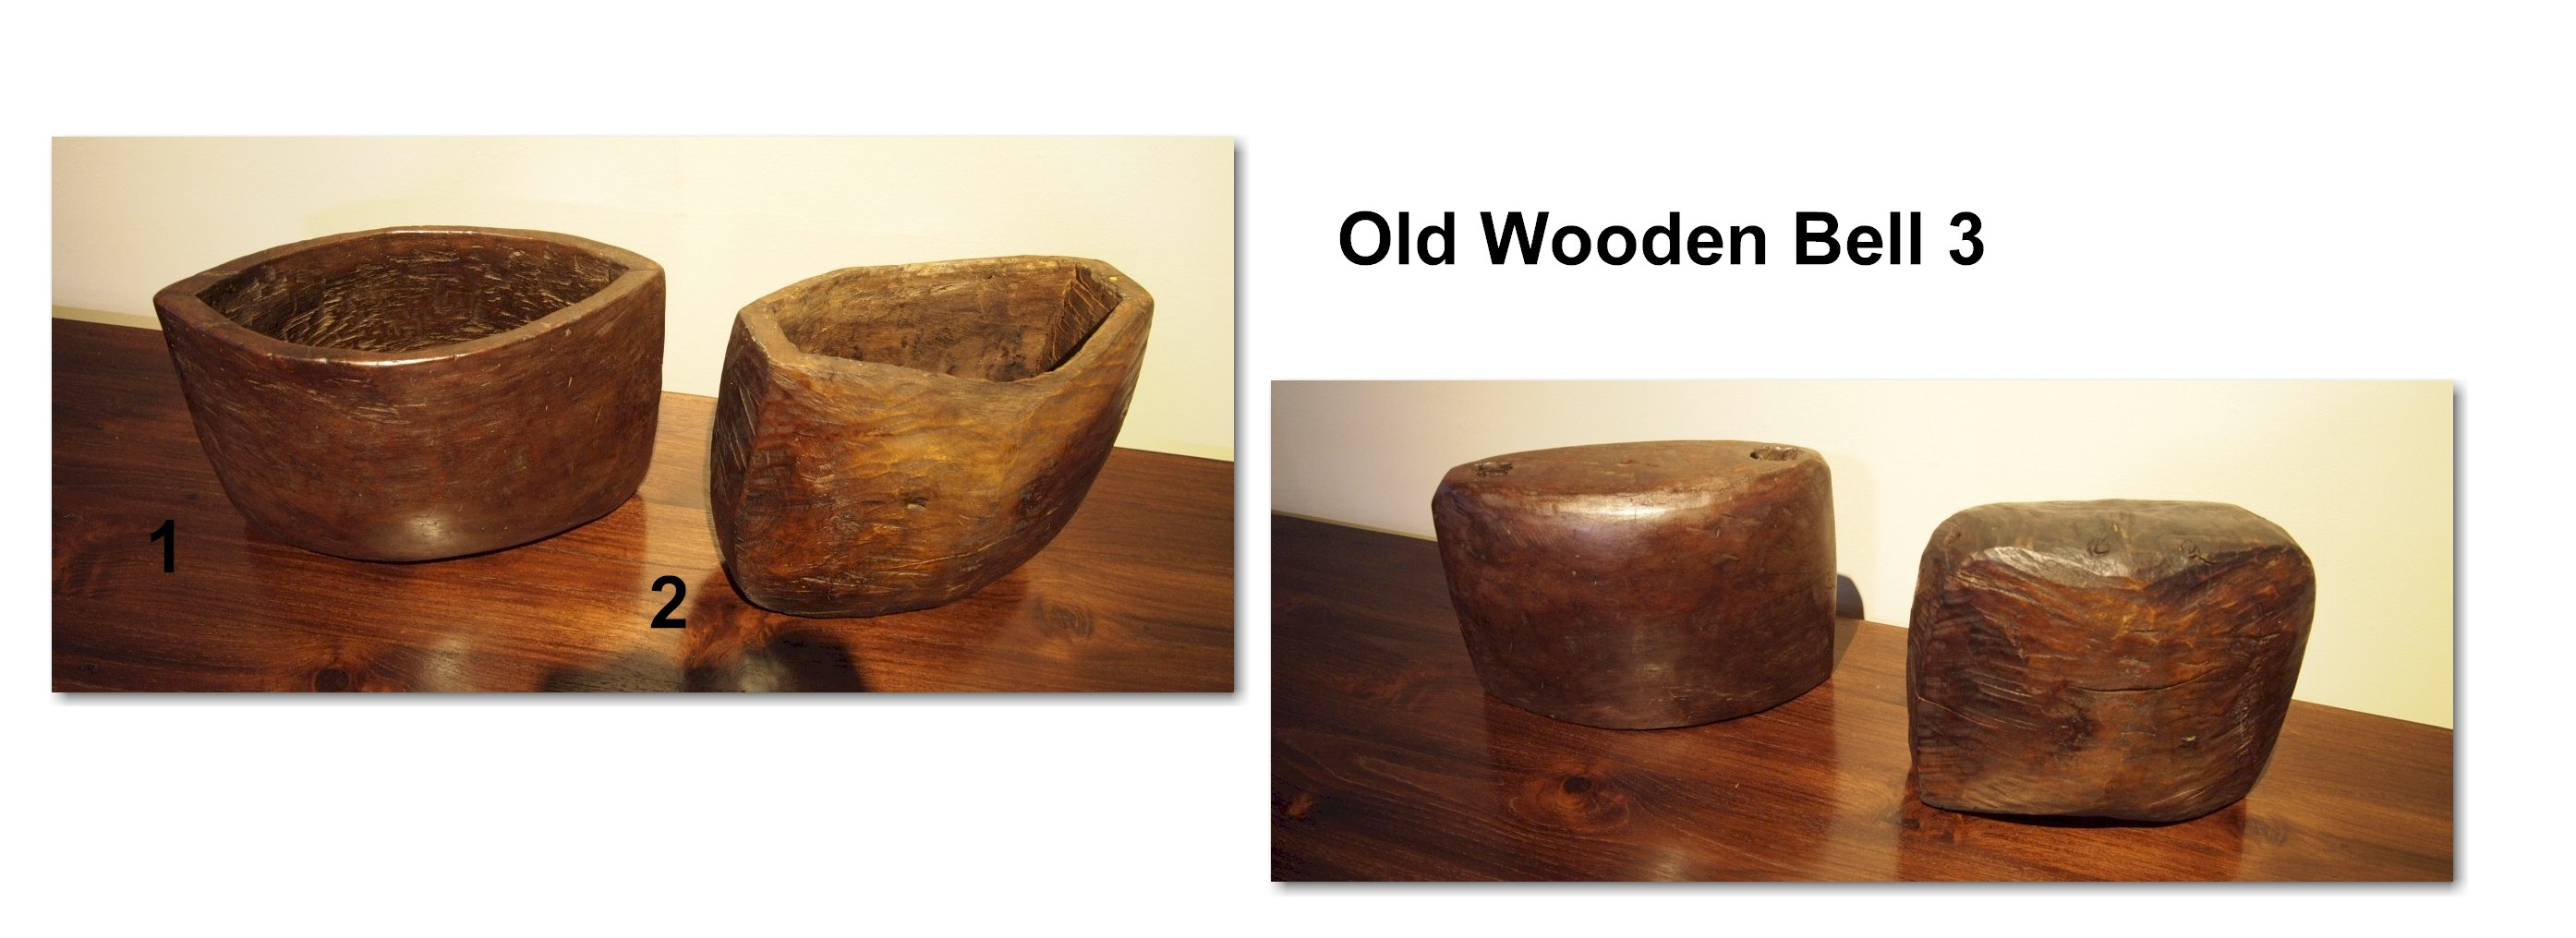 Old Wooden Bell 3